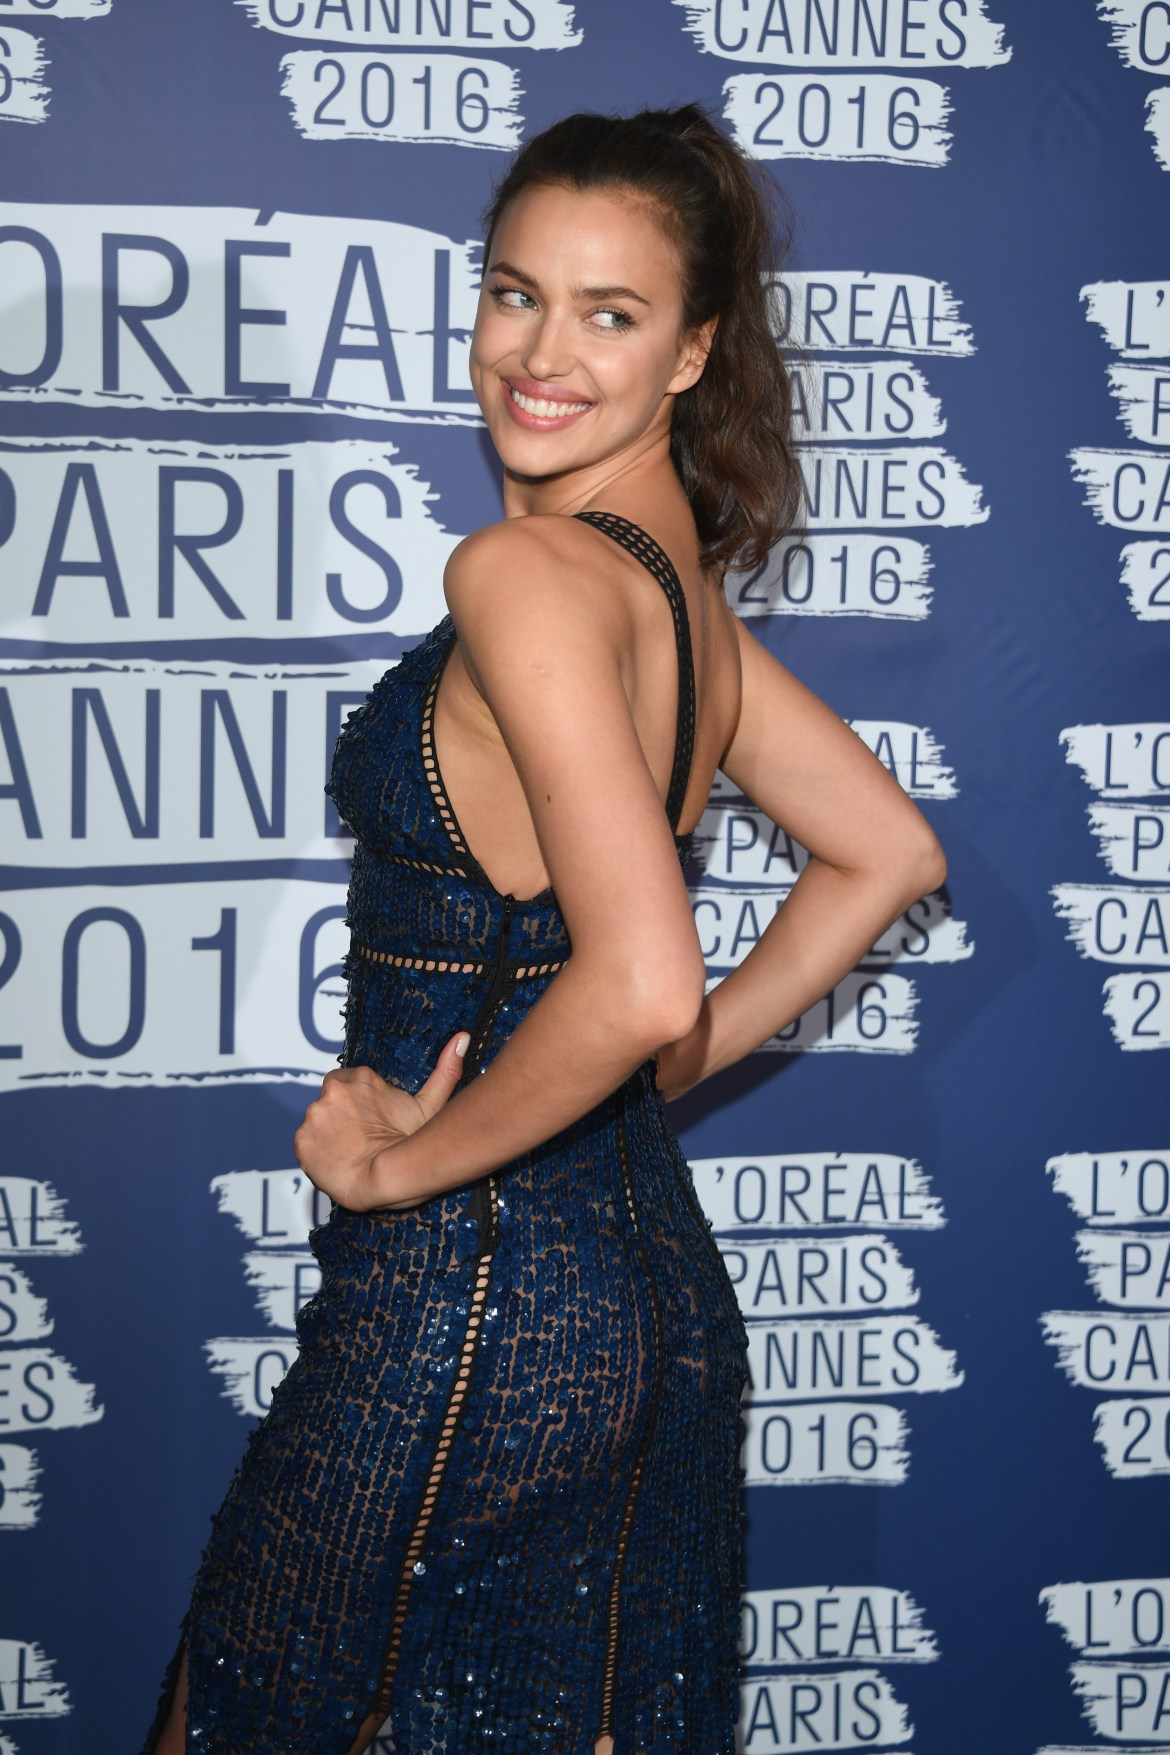 CANNES, FRANCE - MAY 18: Irina Shayk attends the L'Oreal Party during the annual 69th Cannes Film Festival at on May 18, 2016 in Cannes, France. (Photo by Venturelli/WireImage)